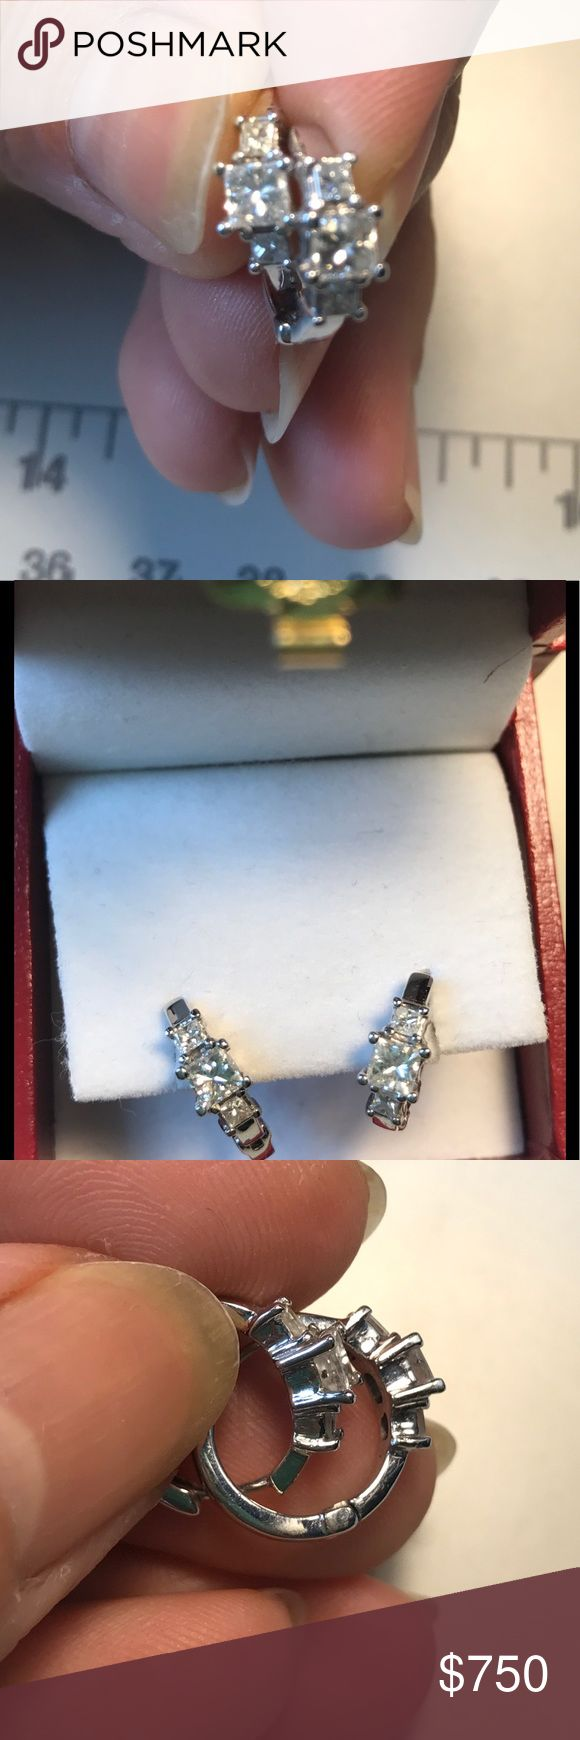 Earring Diamonds studs SI1-2,F-G Order special design  white gold 14 Kt. Princess cut Diamonds total 1 karat. I don't have paper. Money back guarantee 100% Jewelry Earrings